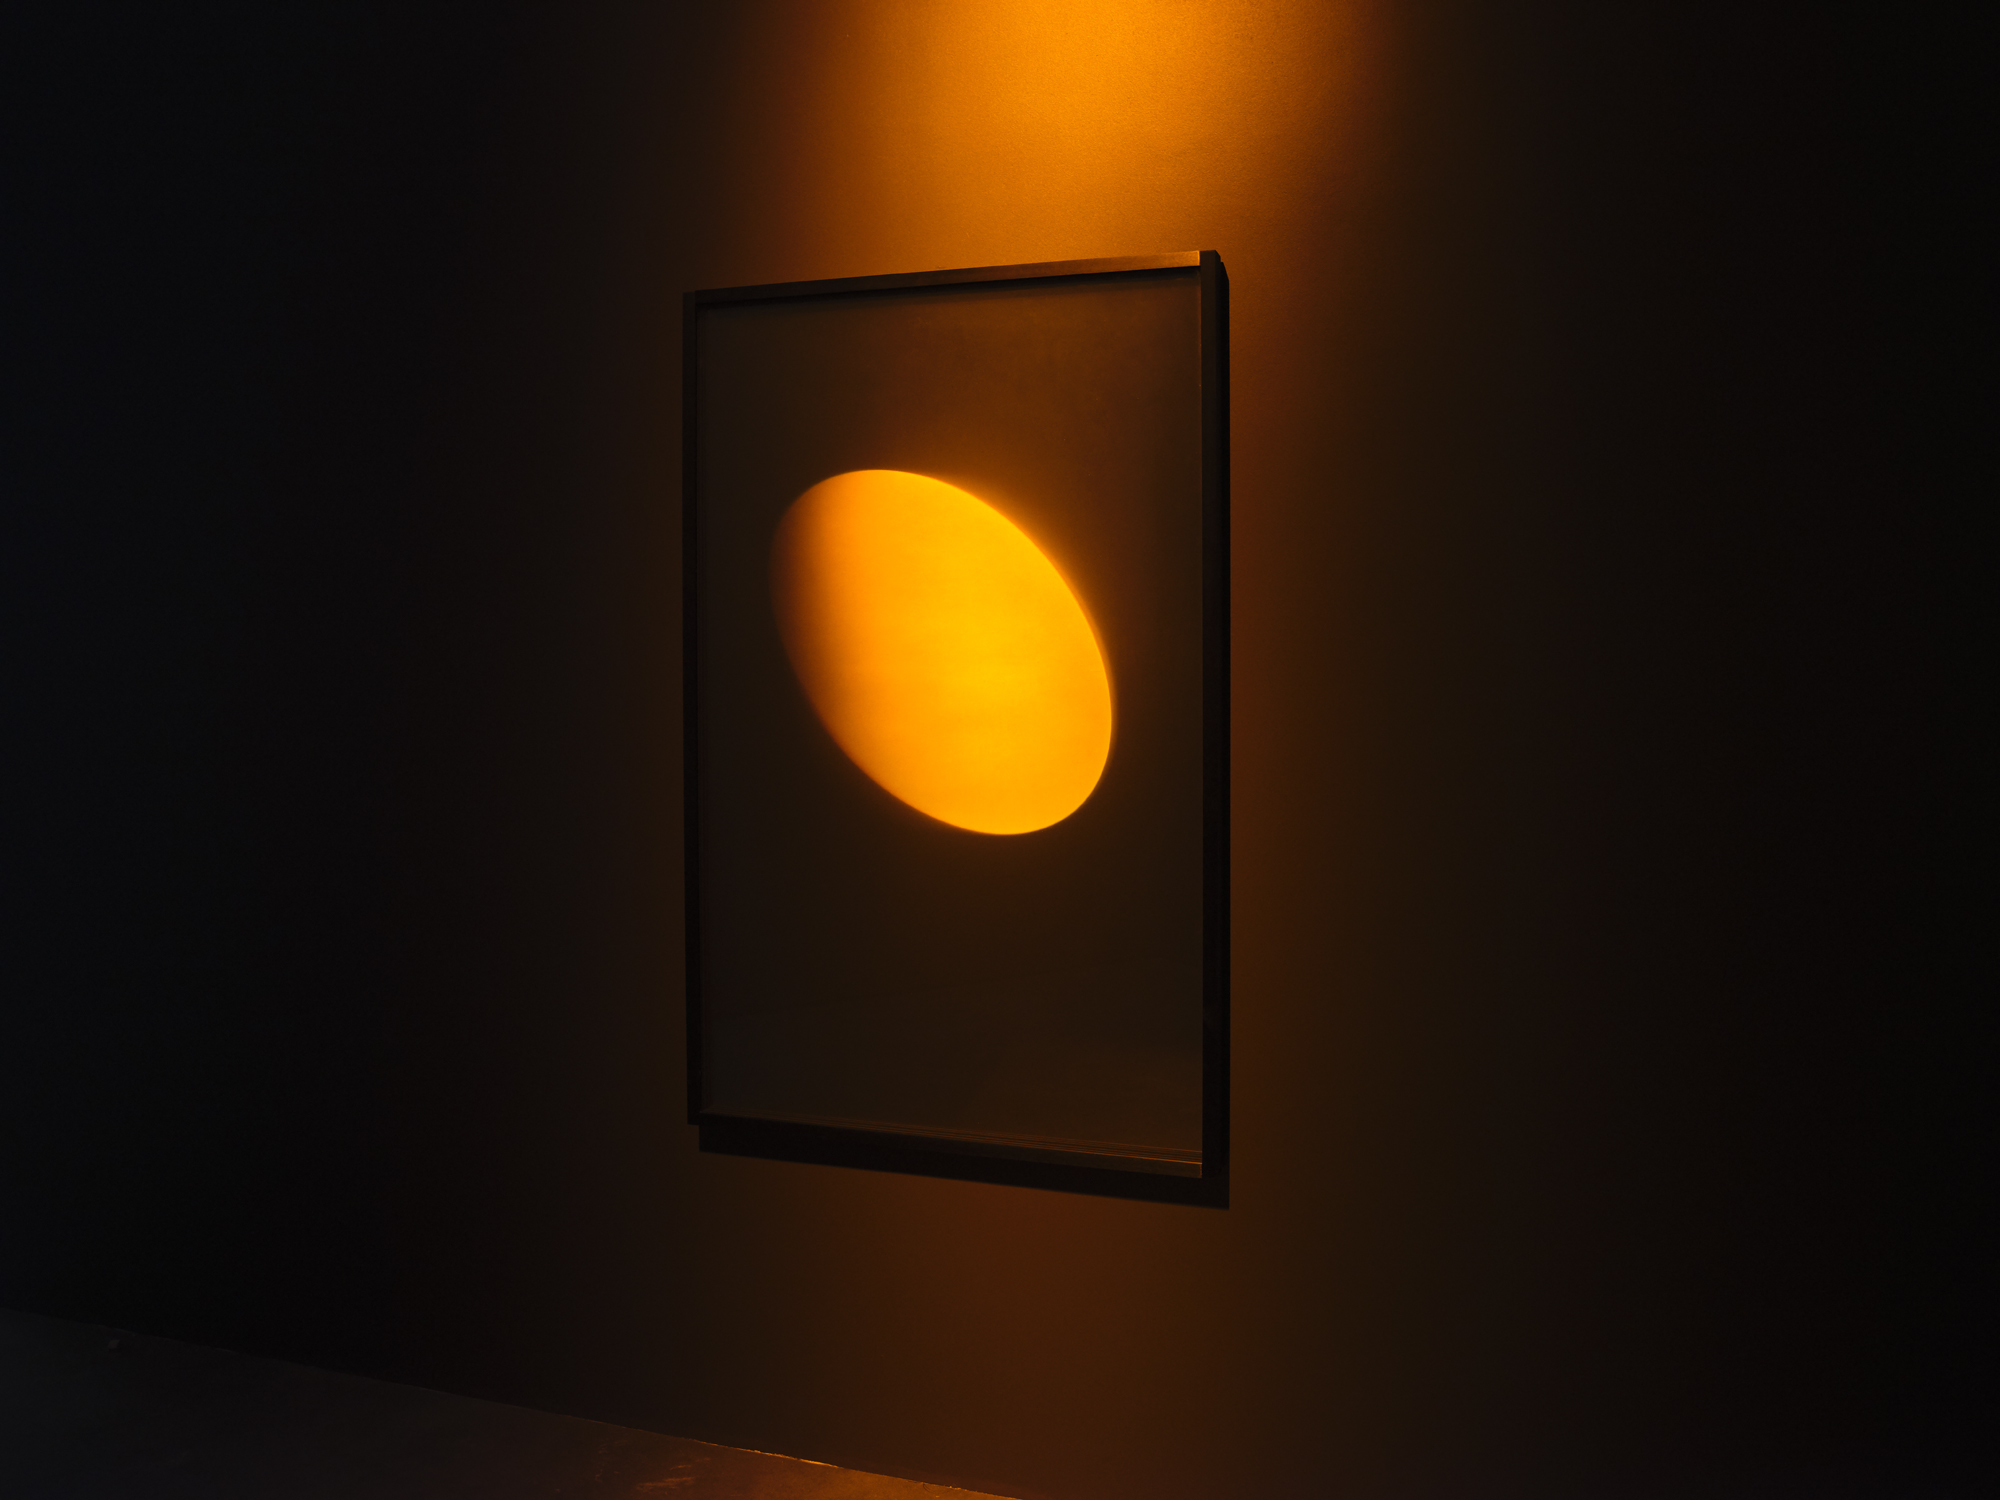 A photo depicts an orange holographic disc on display in a darkened art museum